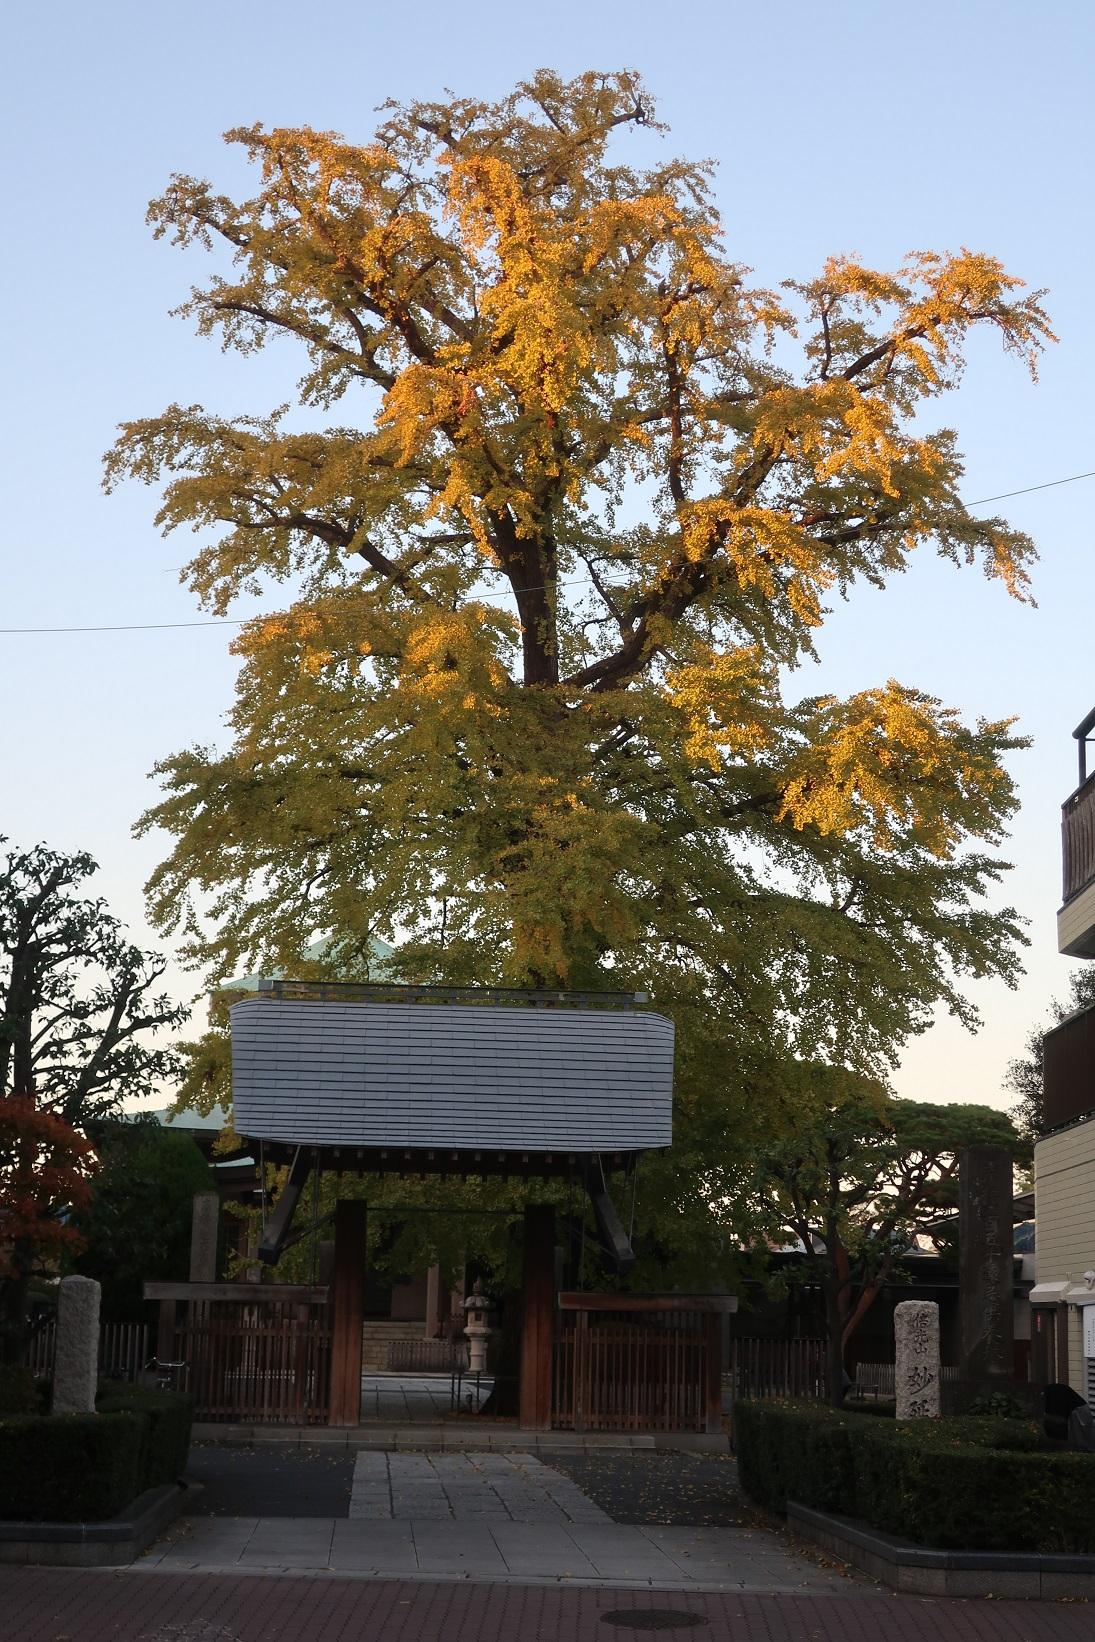 Big ginkgo tree image of the wonder deferred temple